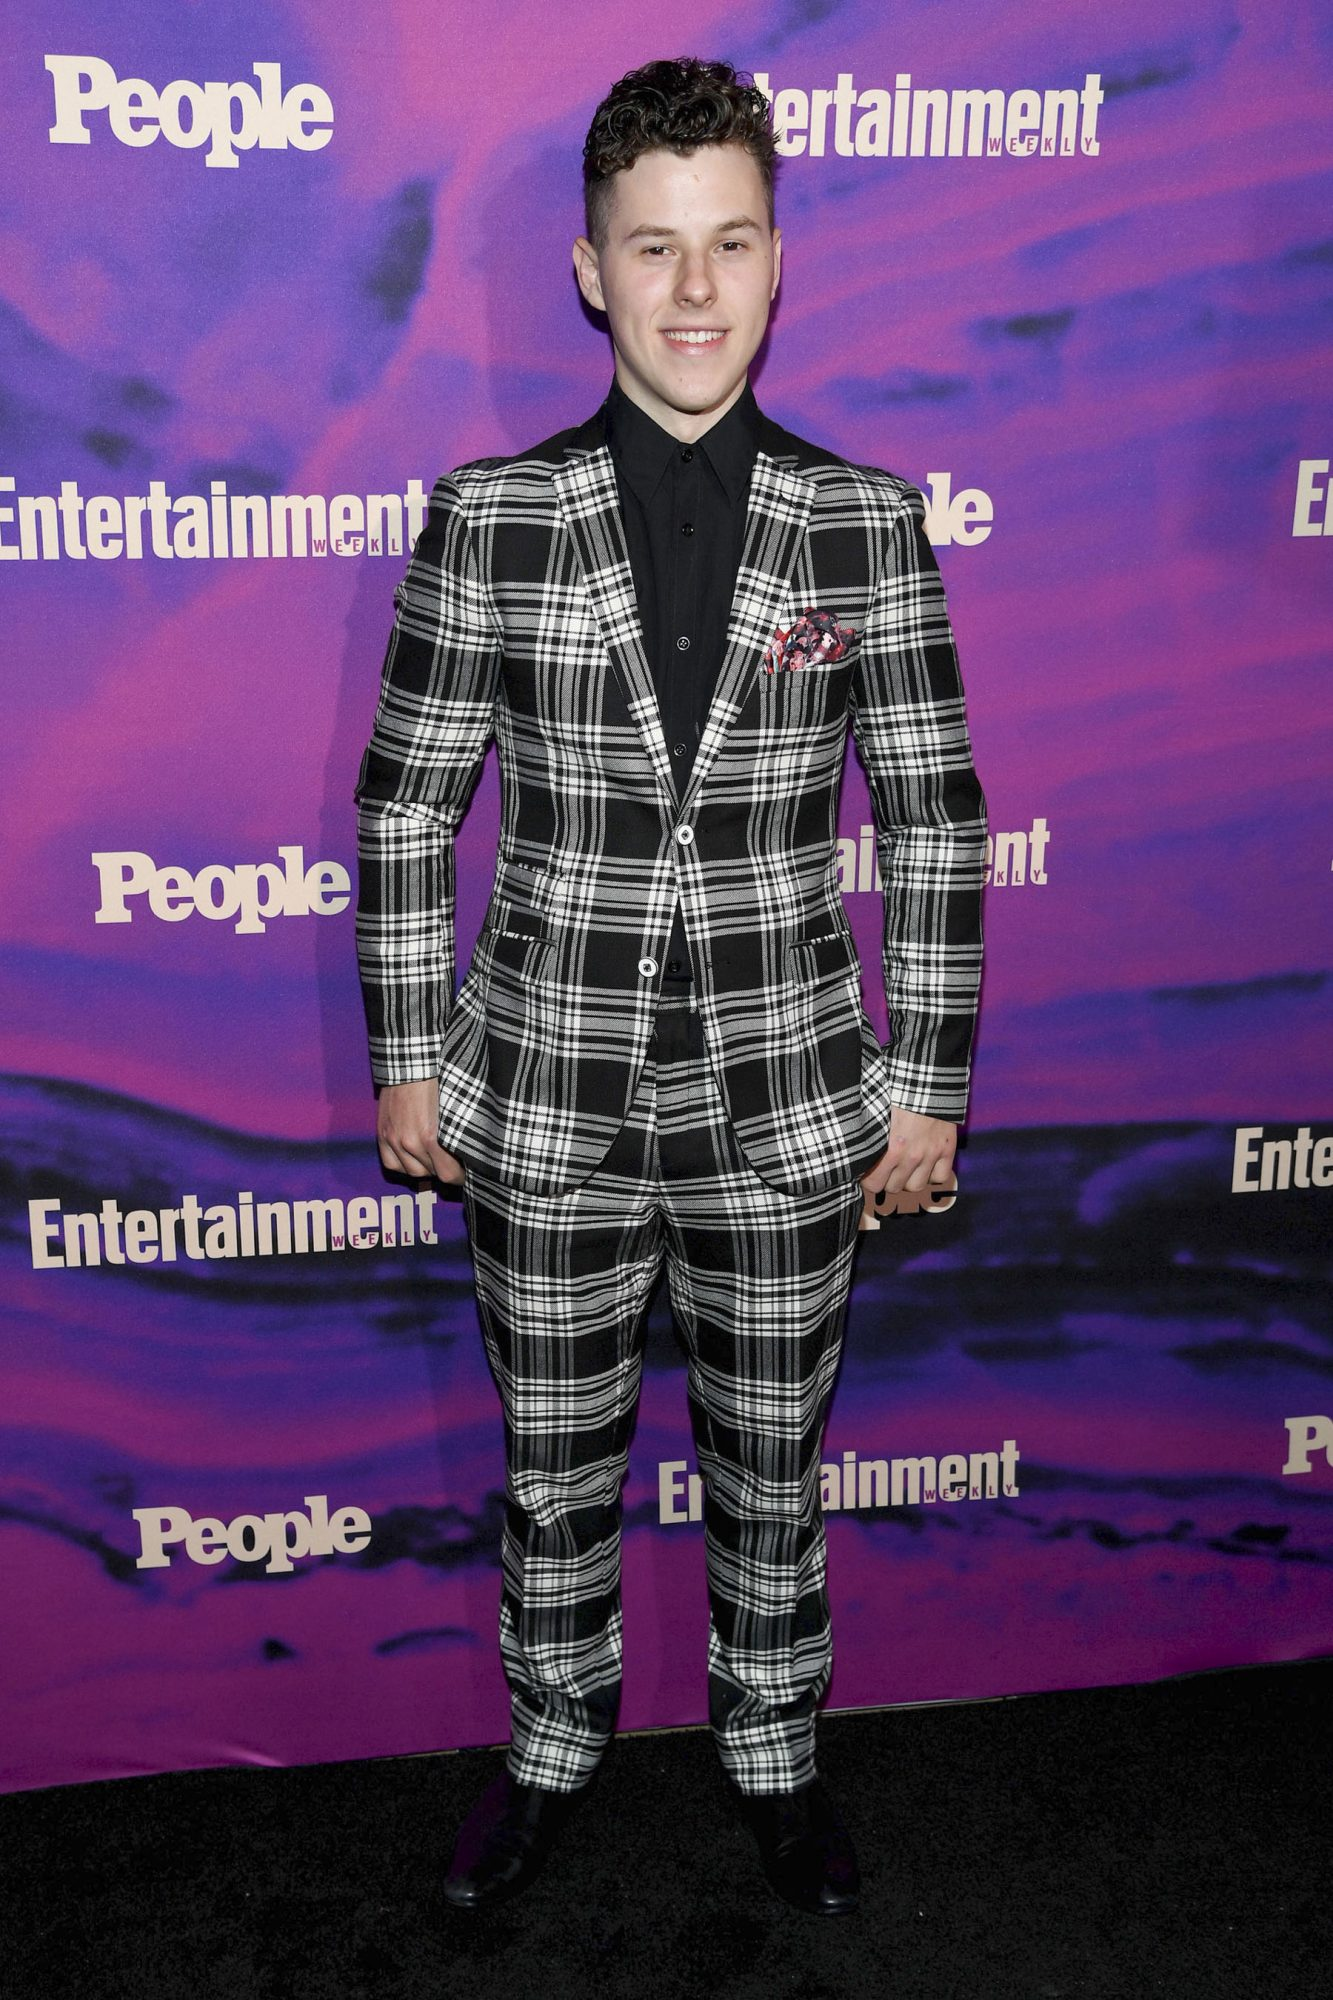 NEW YORK, NEW YORK - MAY 13: Nolan Gould of Modern Family attends the Entertainment Weekly & PEOPLE New York Upfronts Party on May 13, 2019 in New York City. (Photo by Dimitrios Kambouris/Getty Images for Entertainment Weekly & PEOPLE)